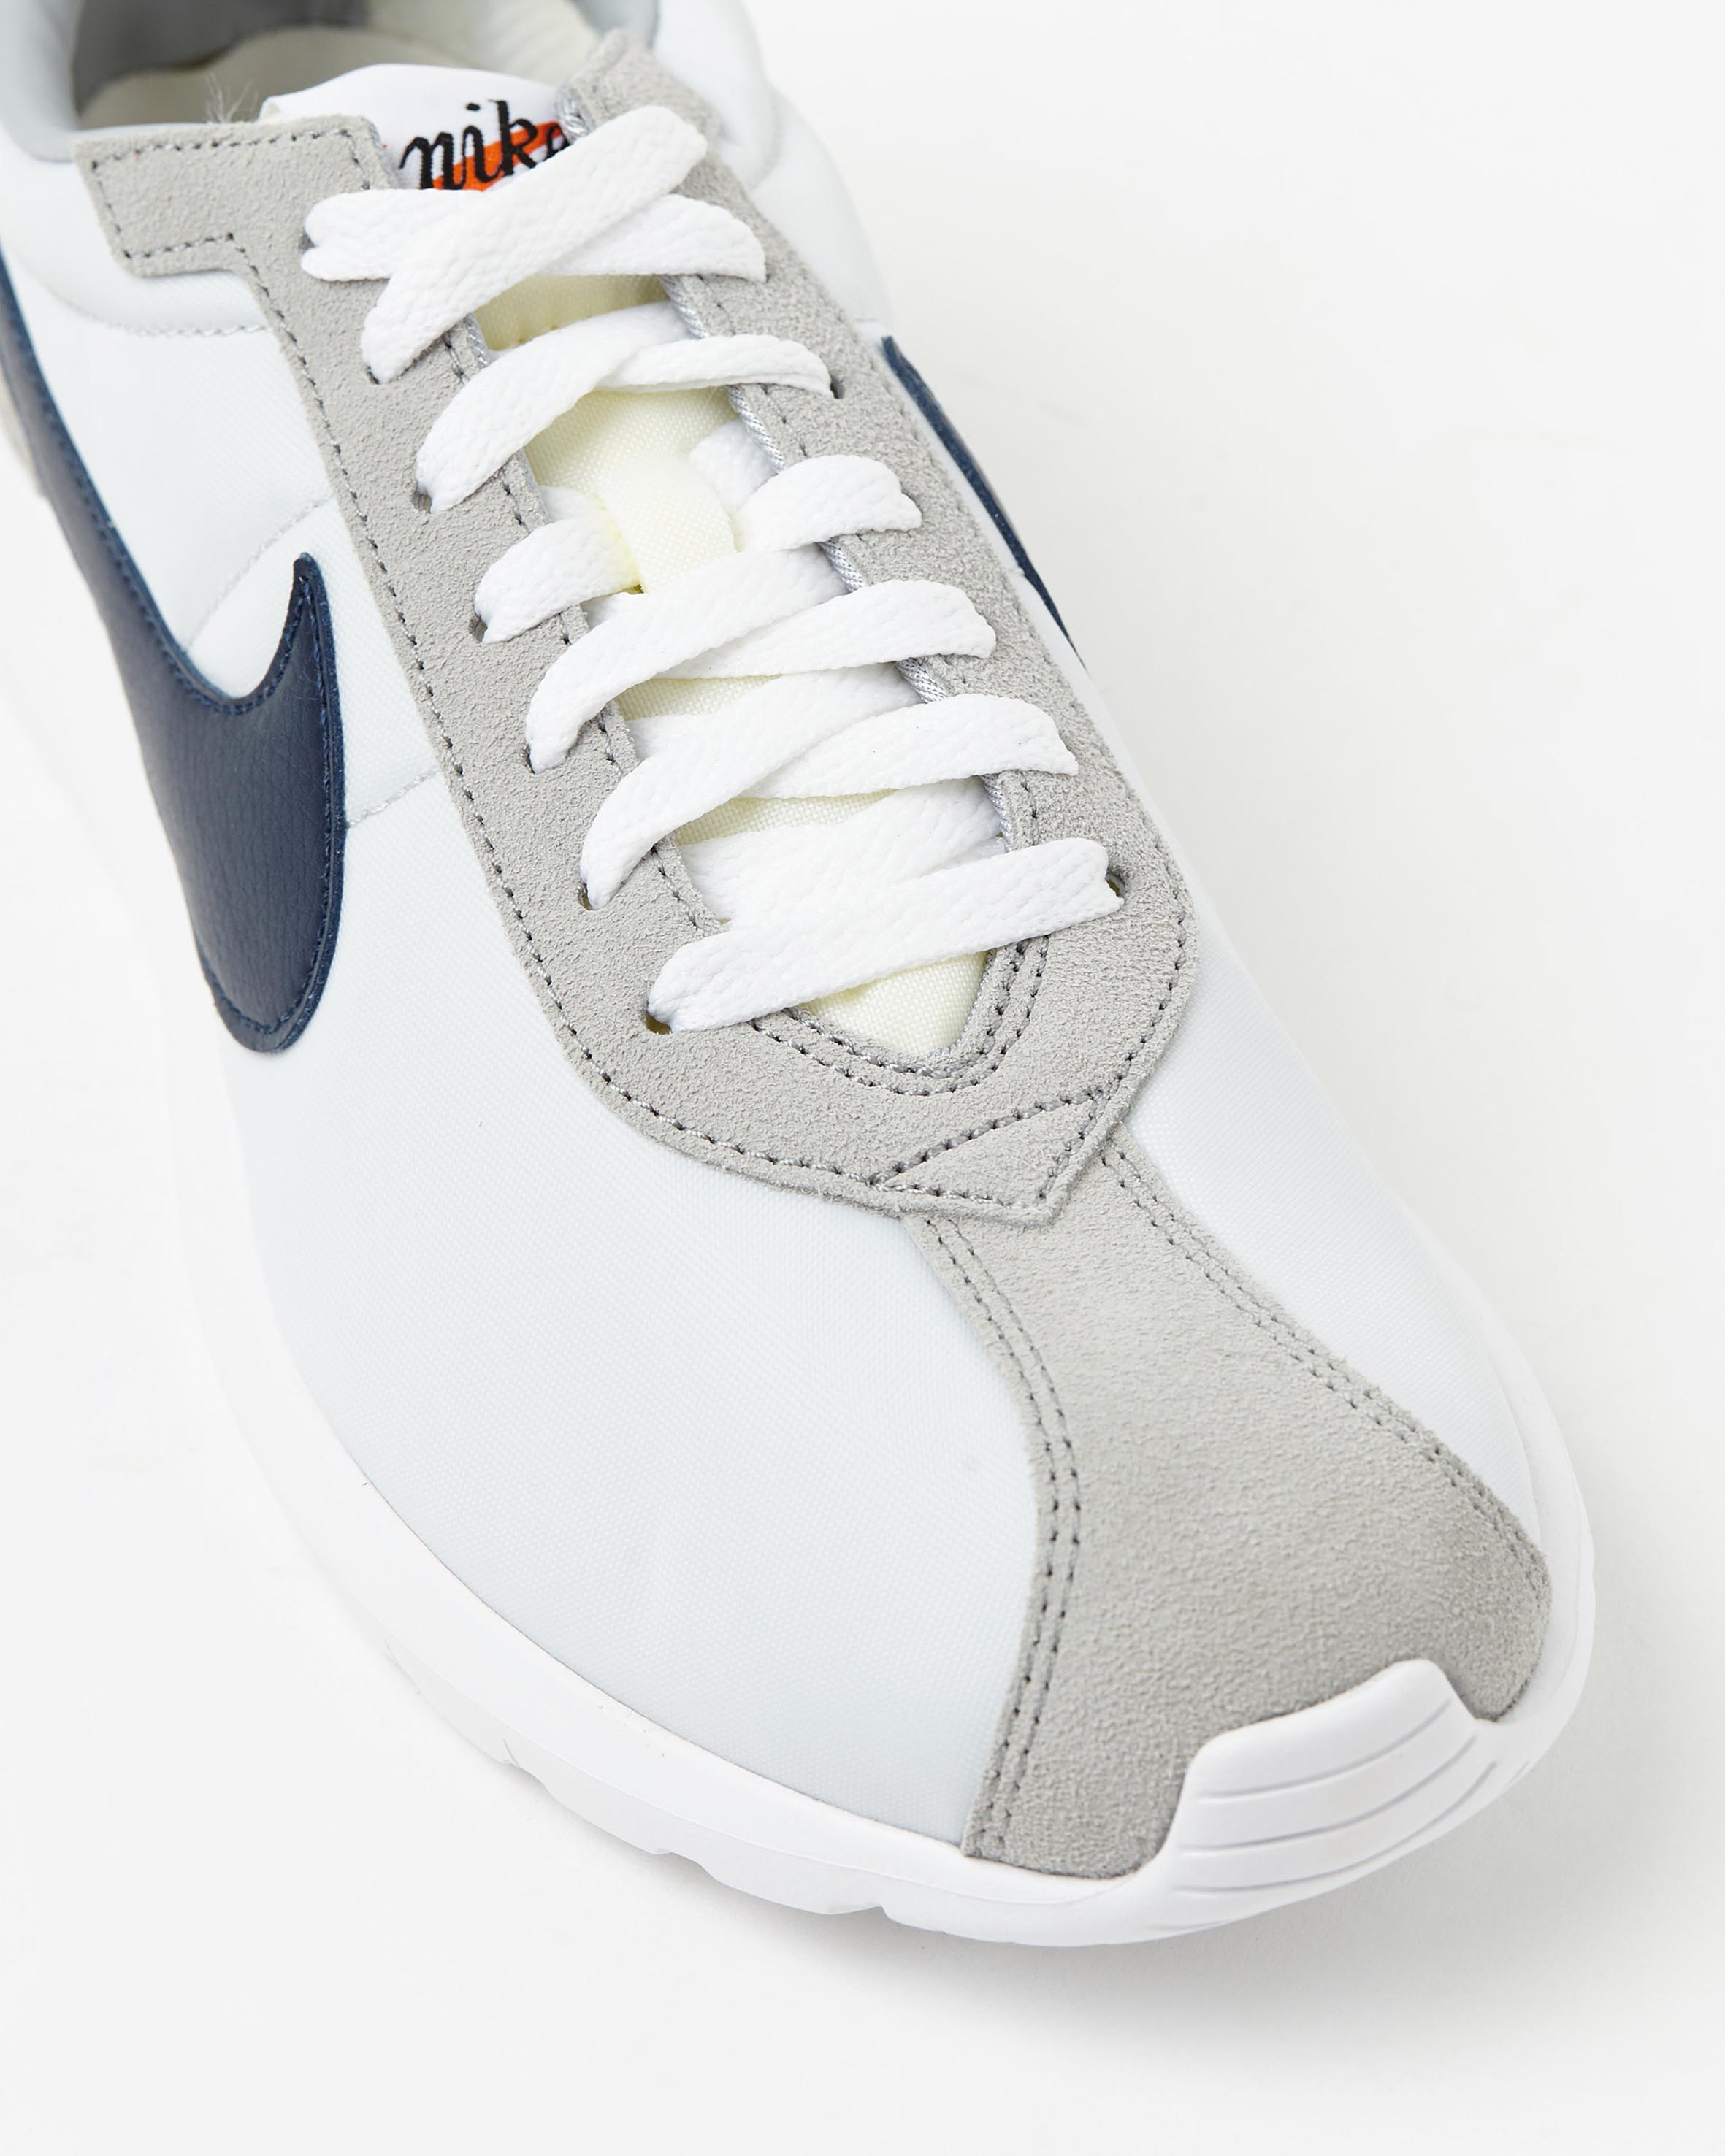 free shipping 6587d d1a9f ... Nike Roshe LD 1000 QS Pure Platinum 4